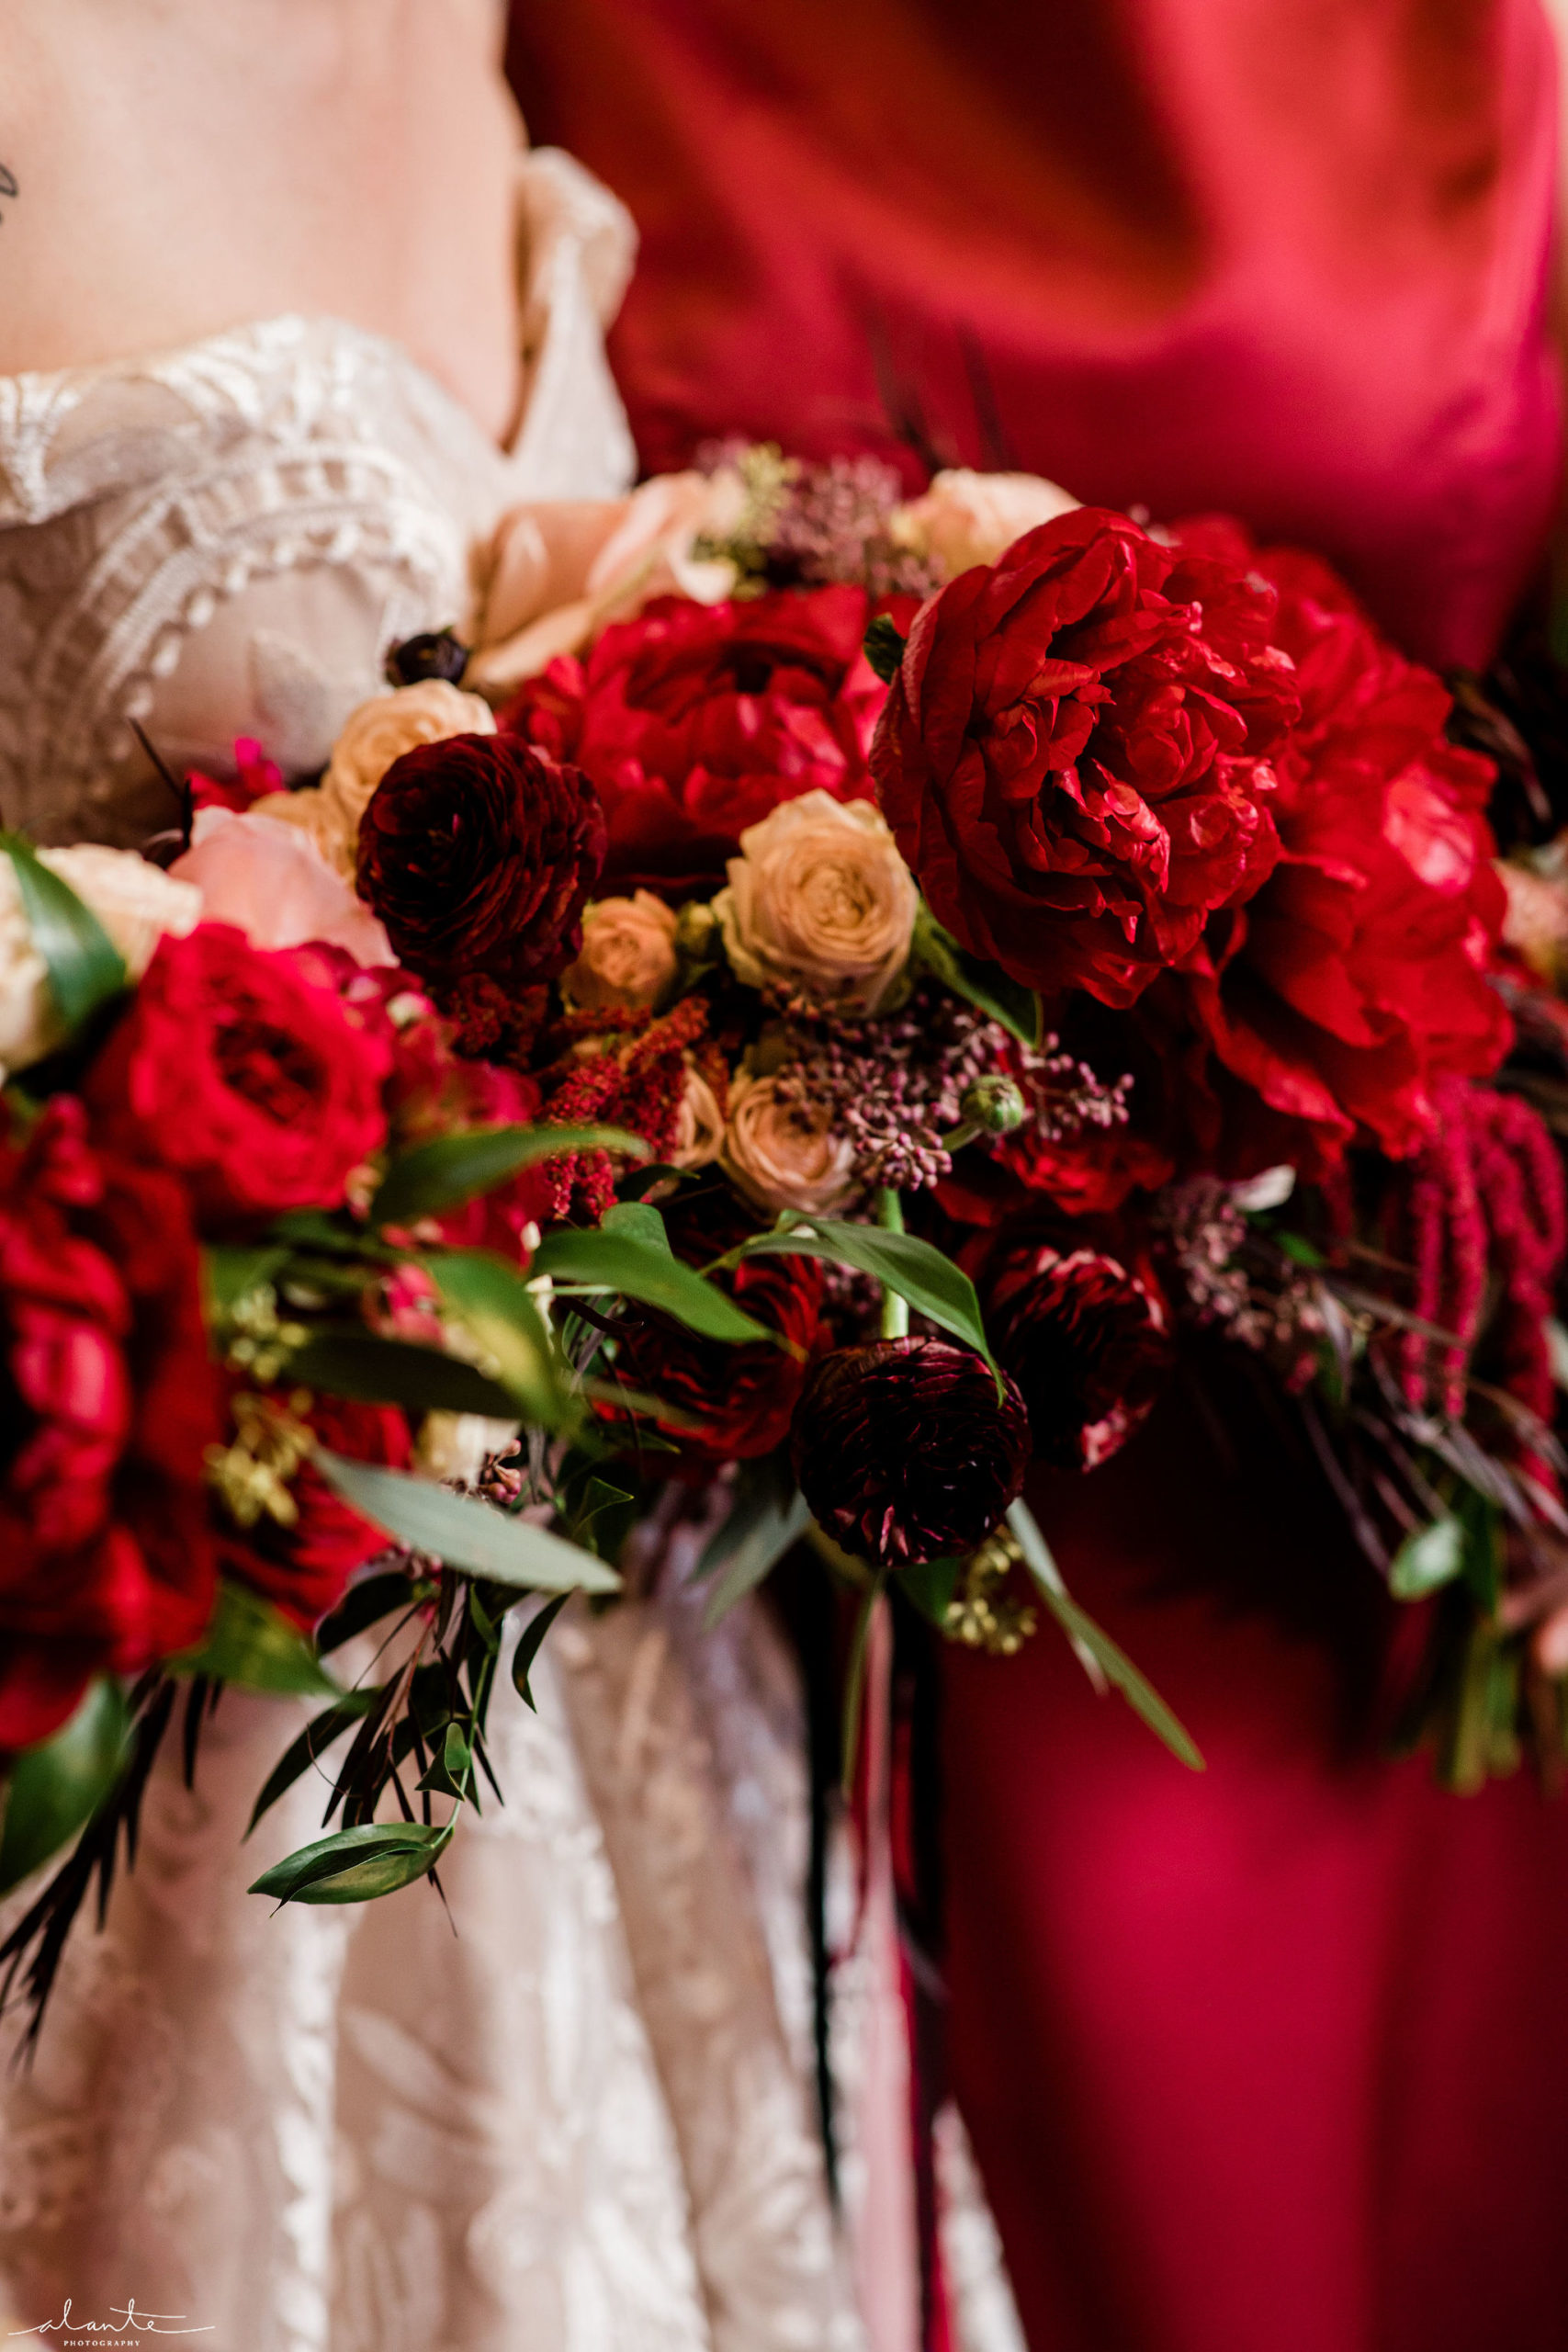 Red peonies are the star of these winter bouquets along with roses and foliages.